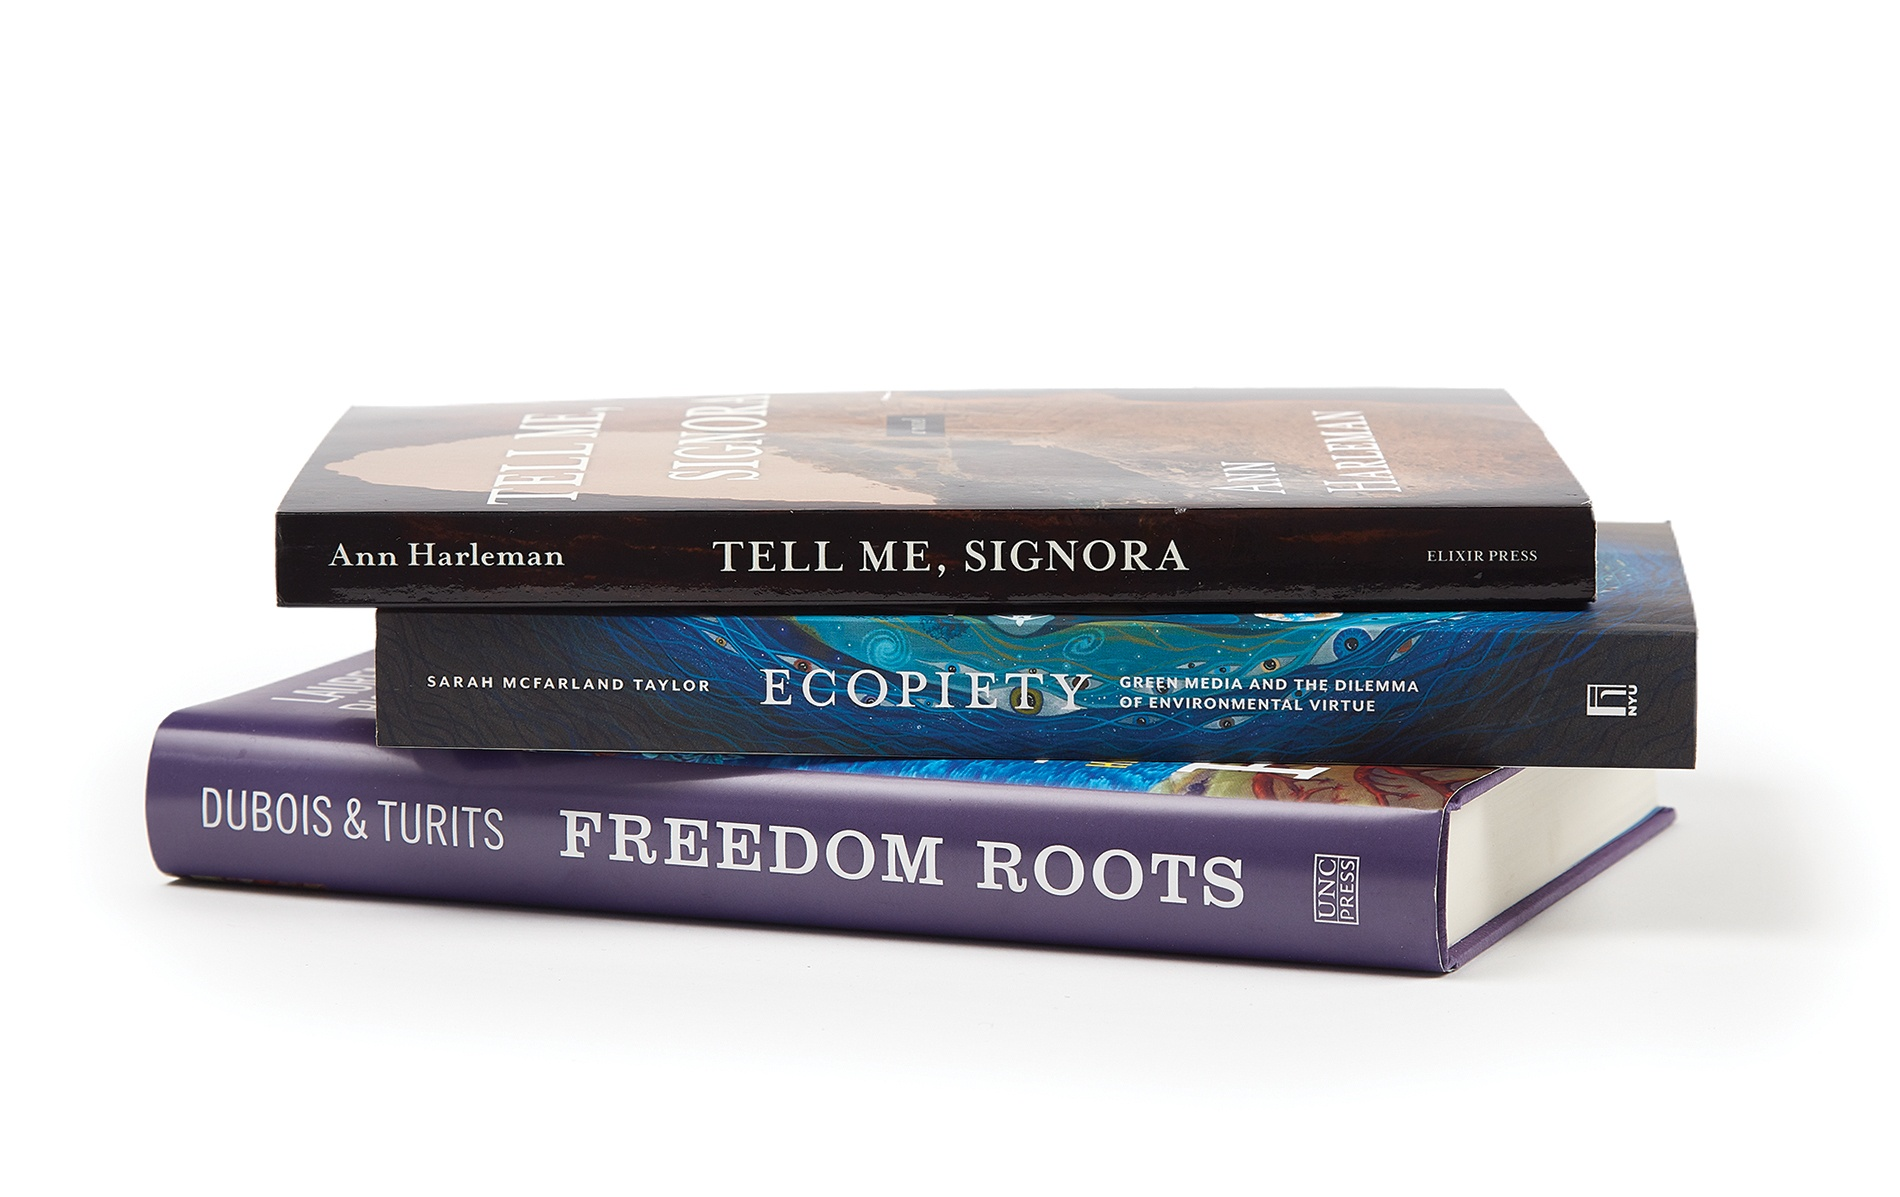 Image of books by Ann Harleman '88 AM, Sarah McFarland Taylor '90, and Richard Lee Turits '83